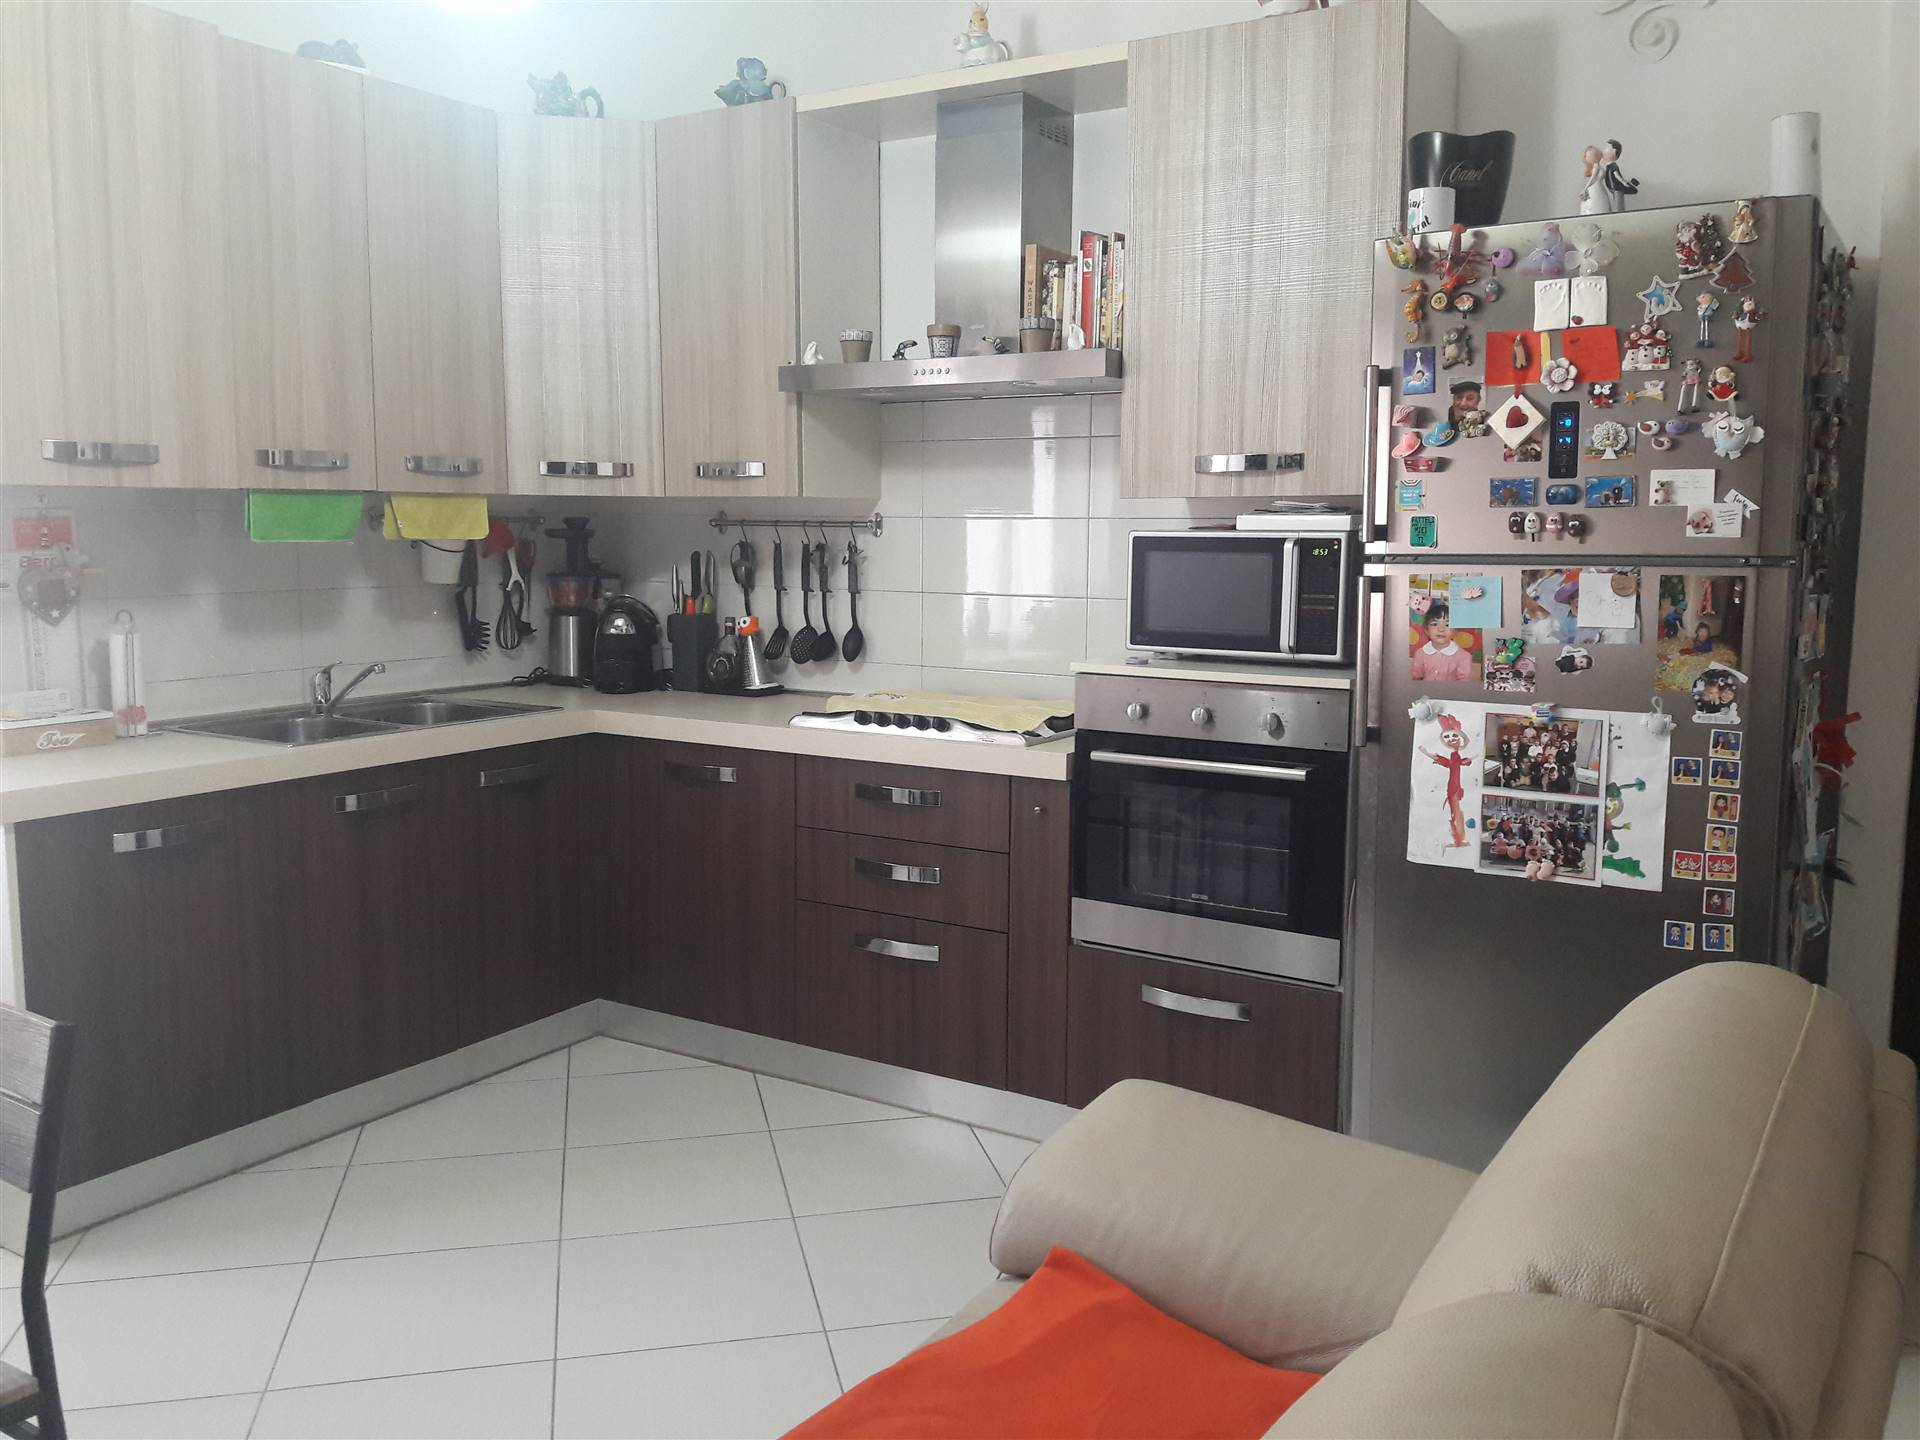 BORGO SAN GIOVANNI, CHIOGGIA, Apartment for sale of 50 Sq. mt., Restored, Heating Individual heating system, Energetic class: G, placed at 6° on 6,